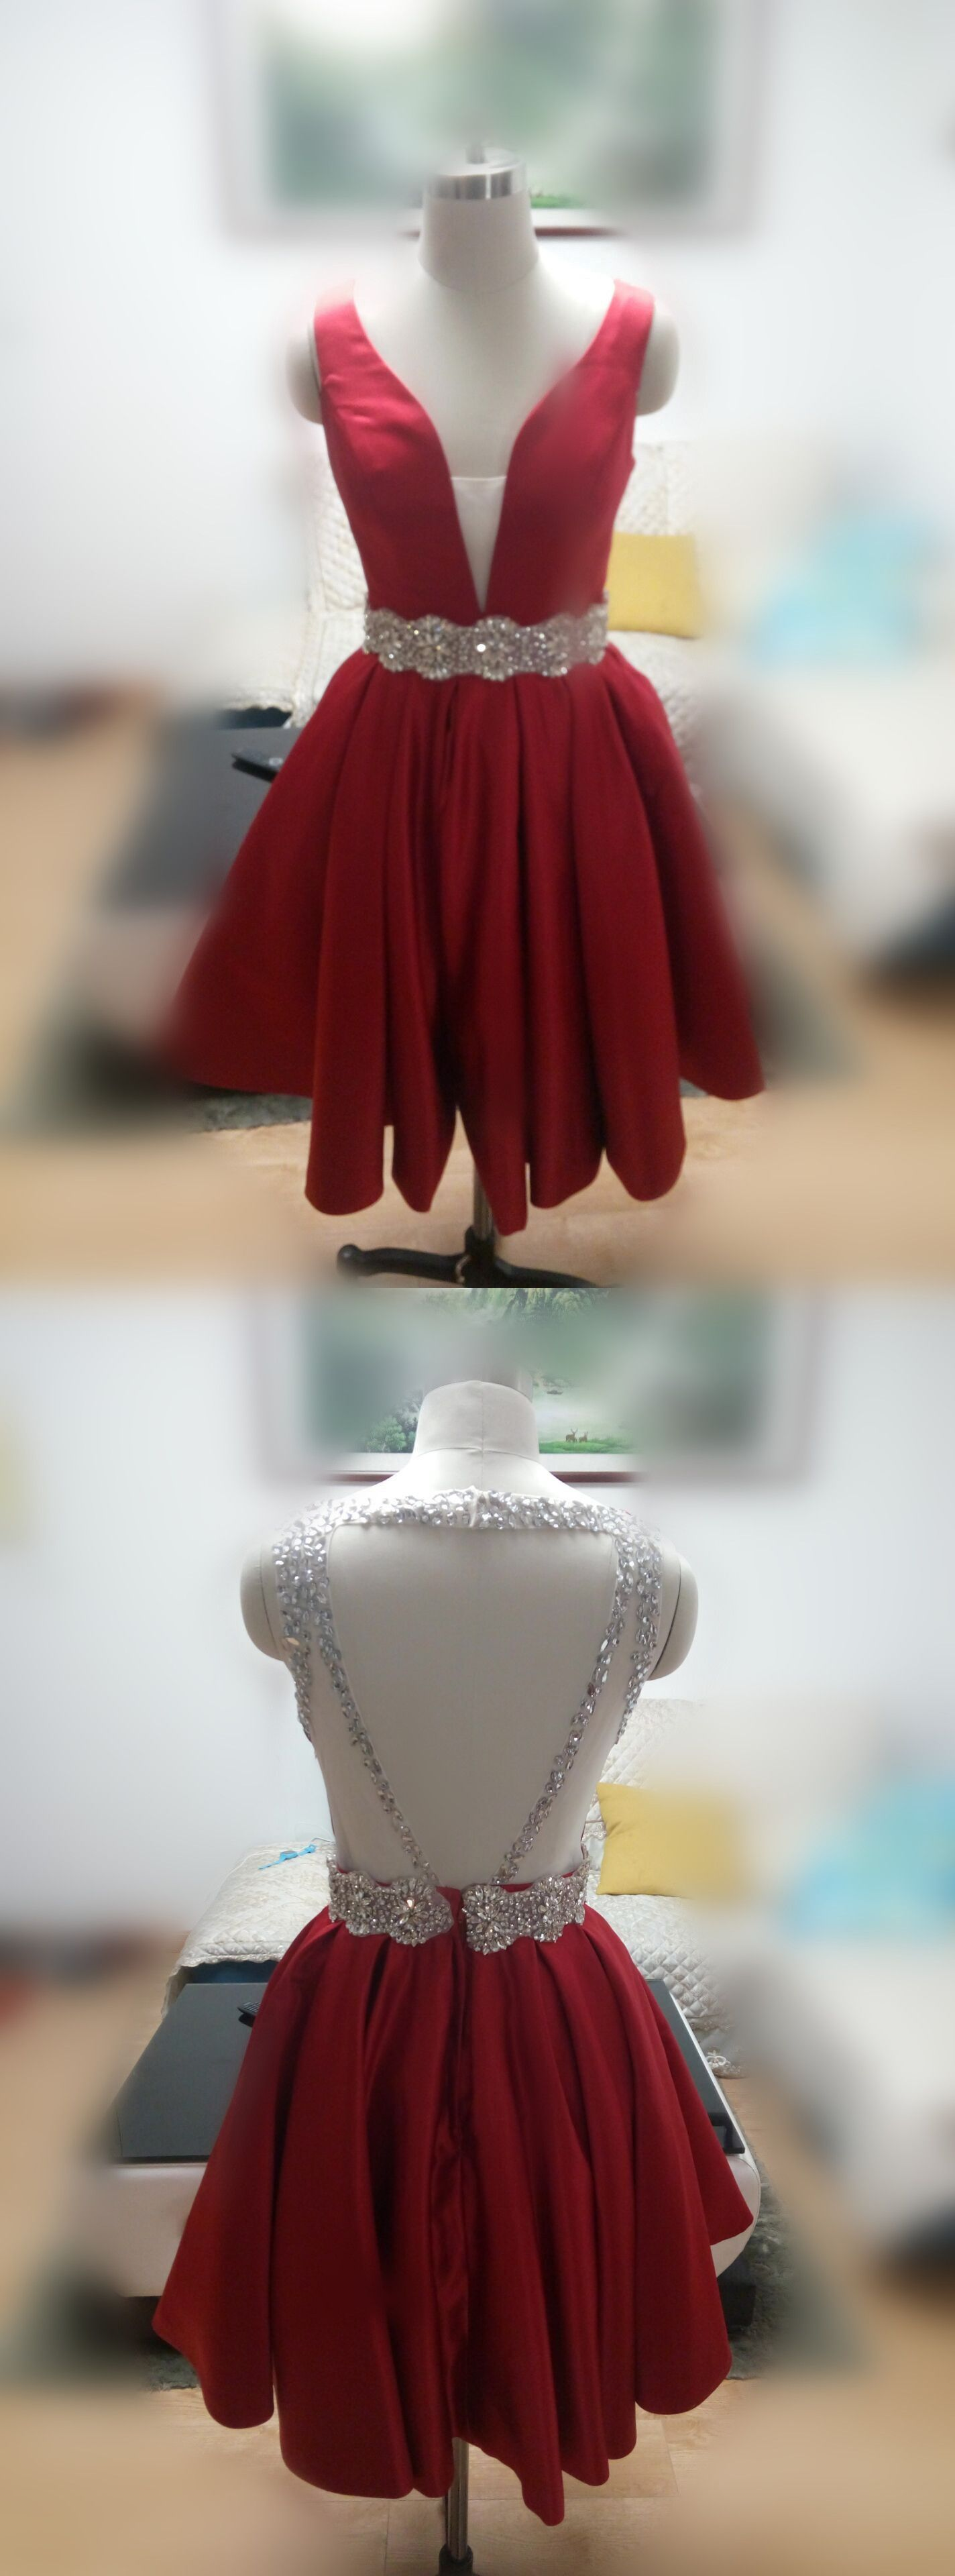 Cute aline dark red homecoming dress with open back from modsele